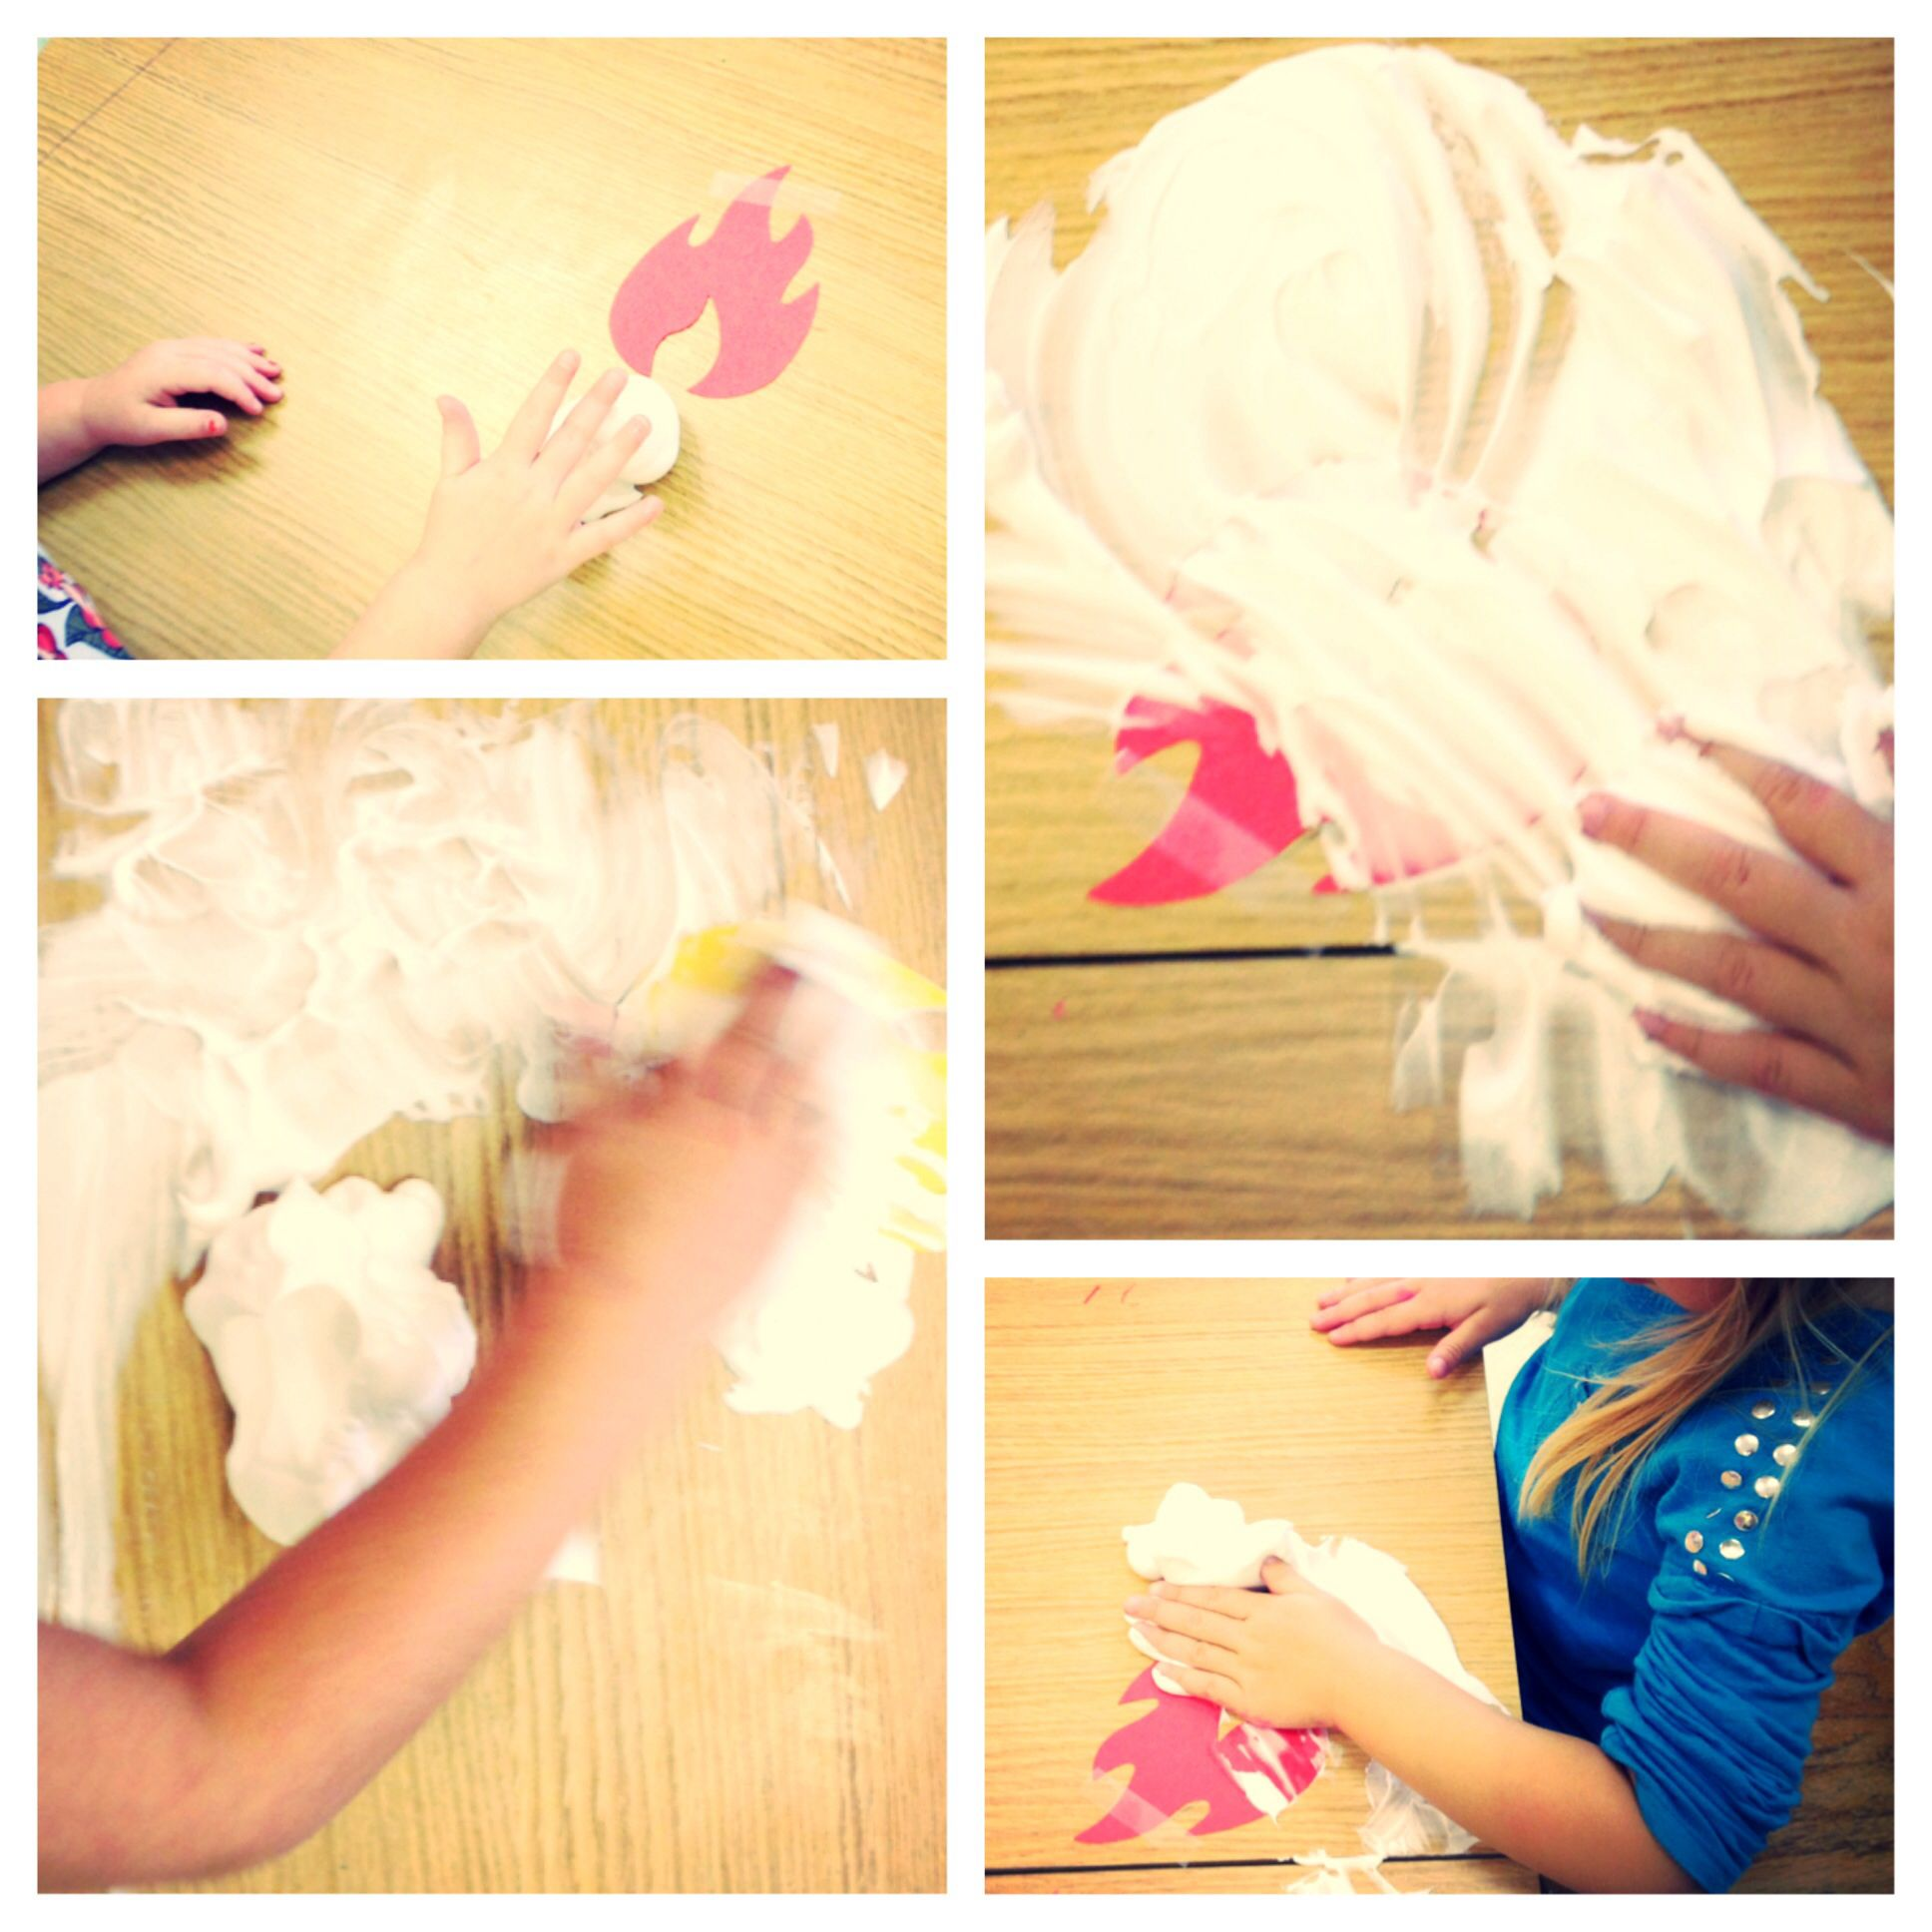 Putting Out The Fire With Shaving Cream Sensory Fun